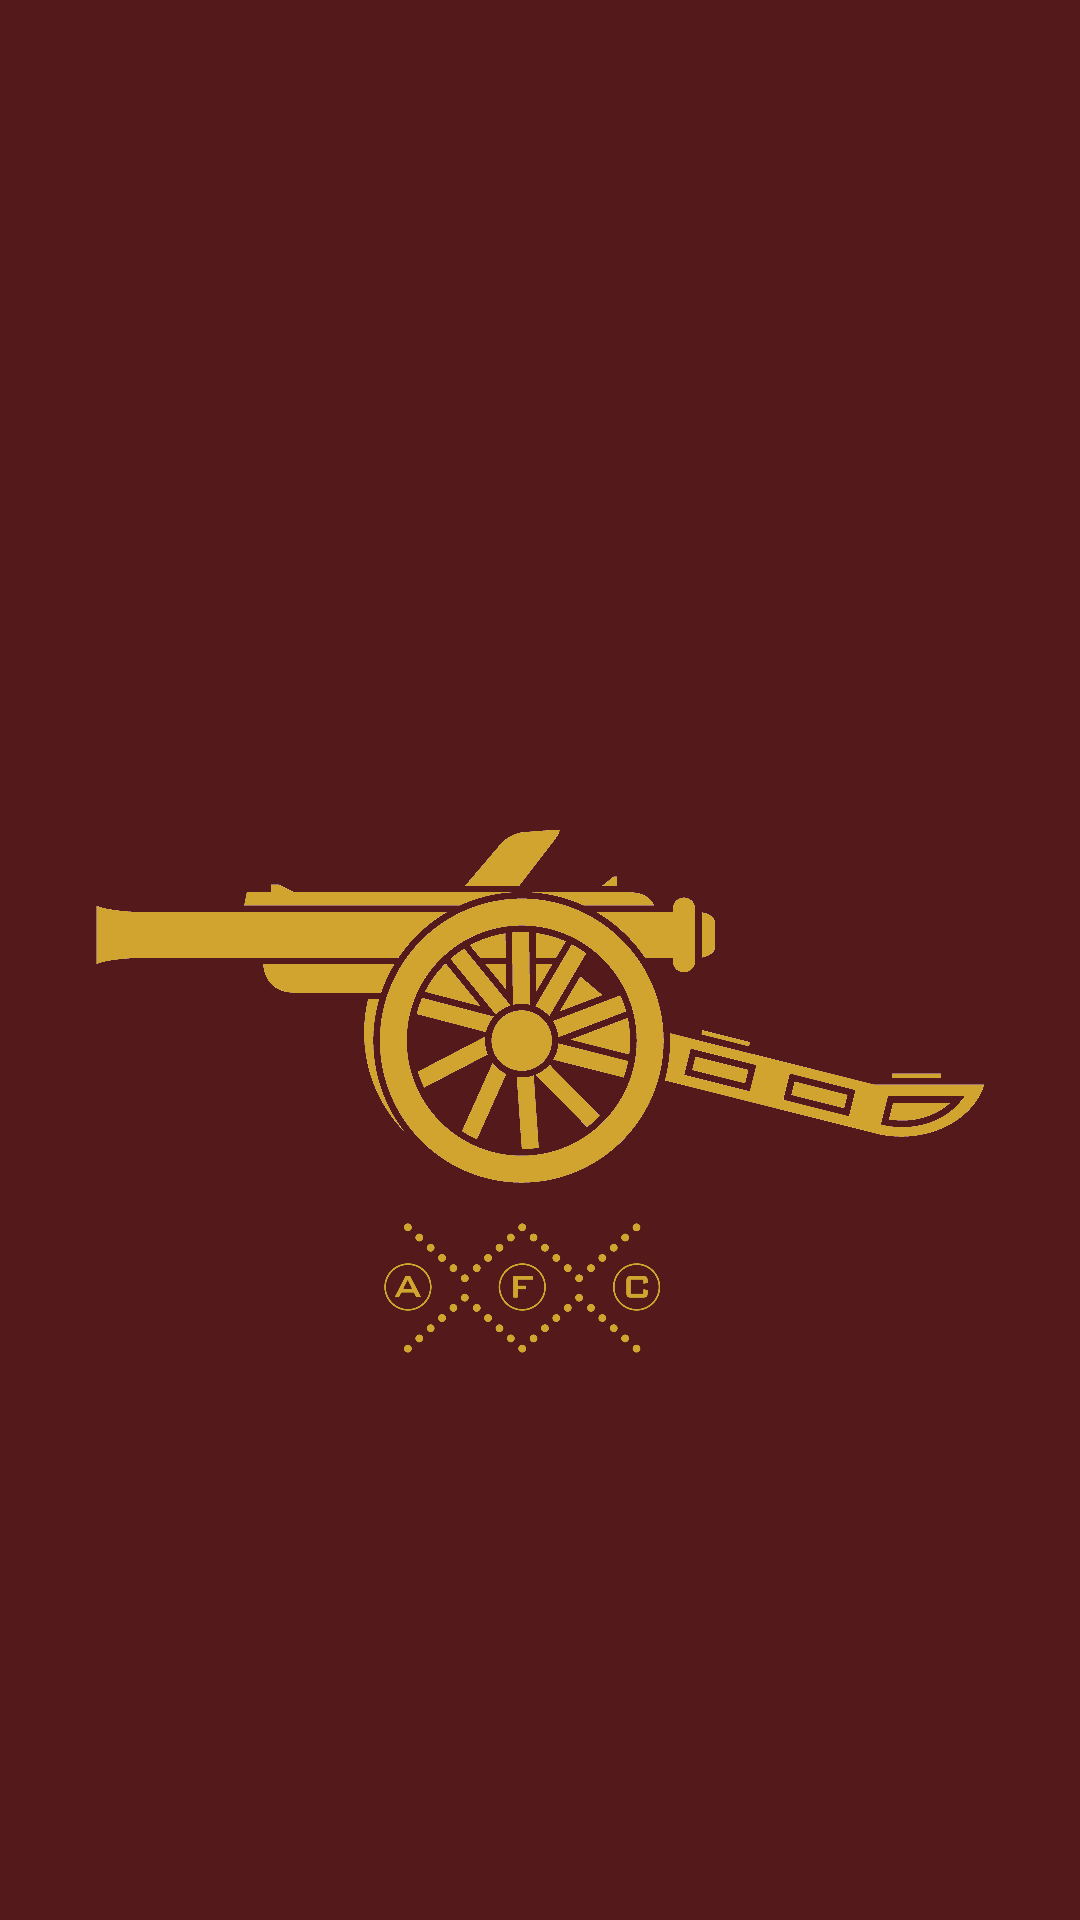 Check The Best Collection Of Arsenal Logo Hd Wallpaper For